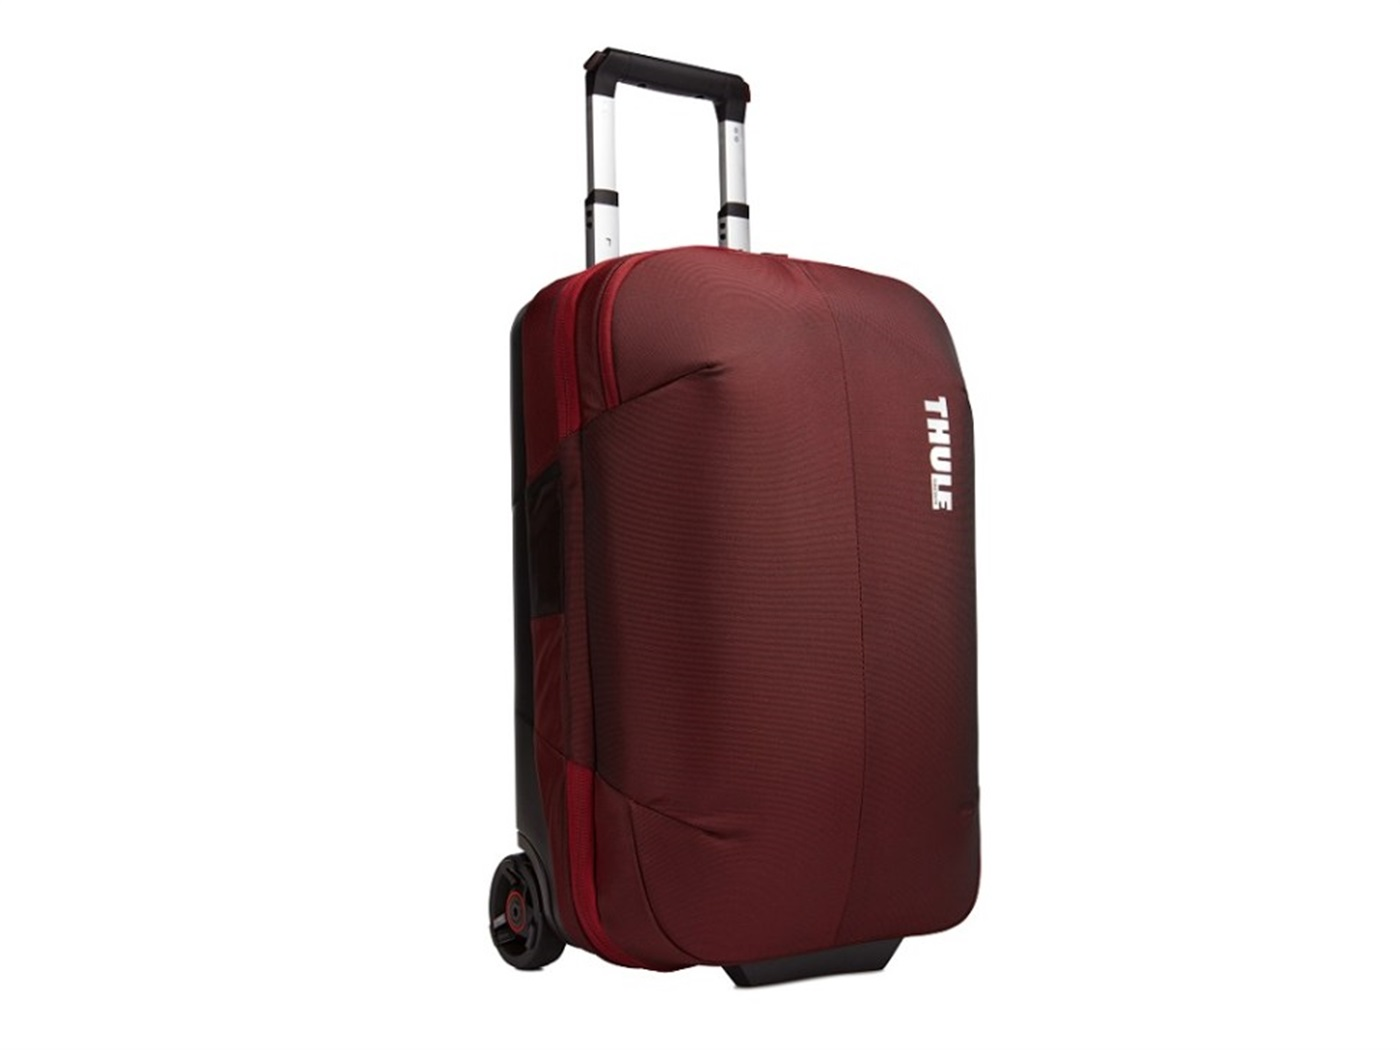 Putna torba Thule Subterra Carry-On 55cm/22″ 36L